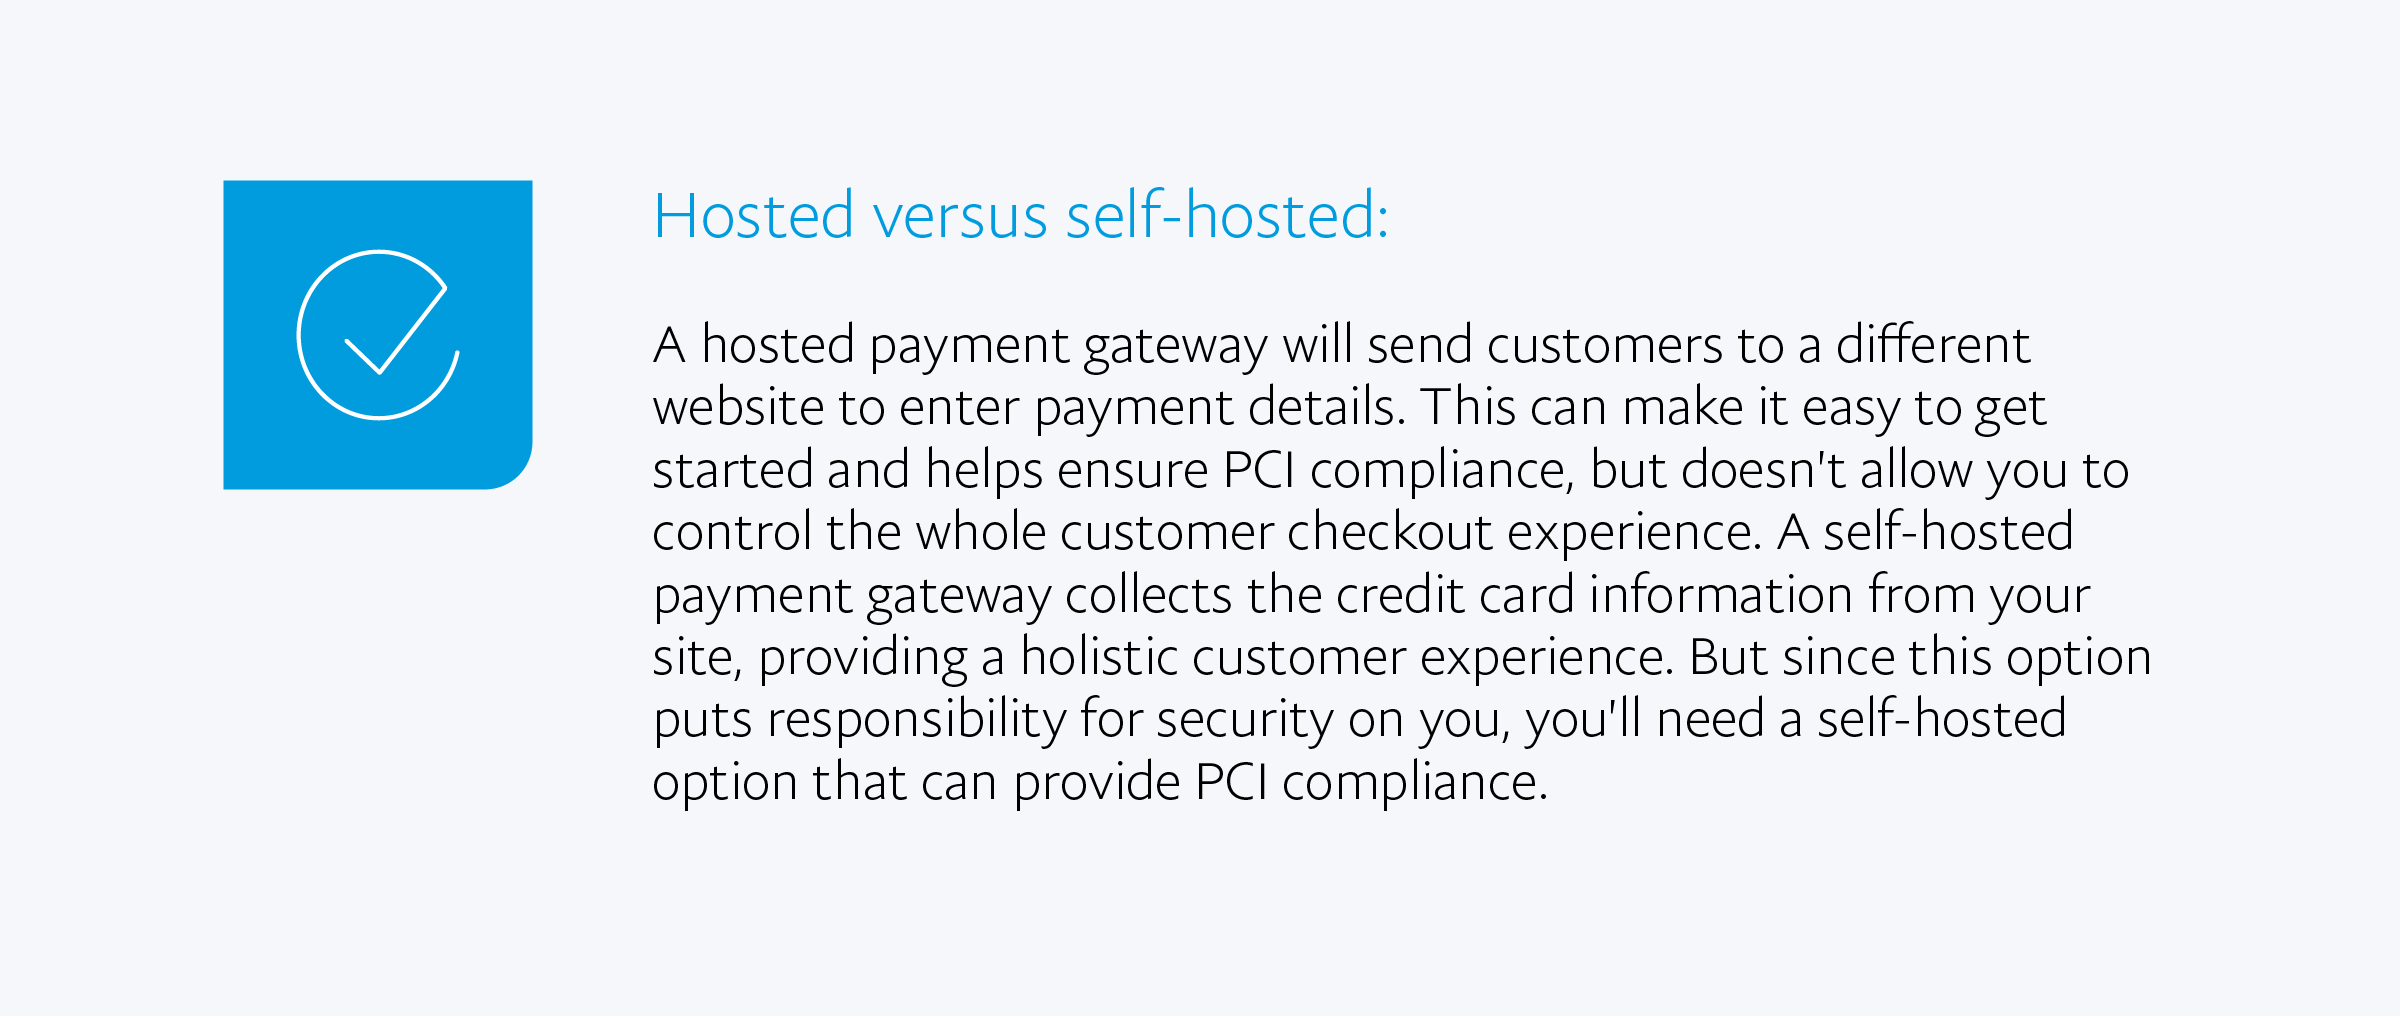 Hosted versus self-hosted: A hosted payment gateway will send customers to a different website to enter payment details. This can make it easy to get started and helps ensure PCI compliance, but doesn't allow you to control the whole customer checkout experience. A self-hosted payment gateway collects the credit card information from your site, providing a holistic customer experience. But since this option puts responsibility for security on you, you'll need a self-hosted option that can provide PCI compliance.